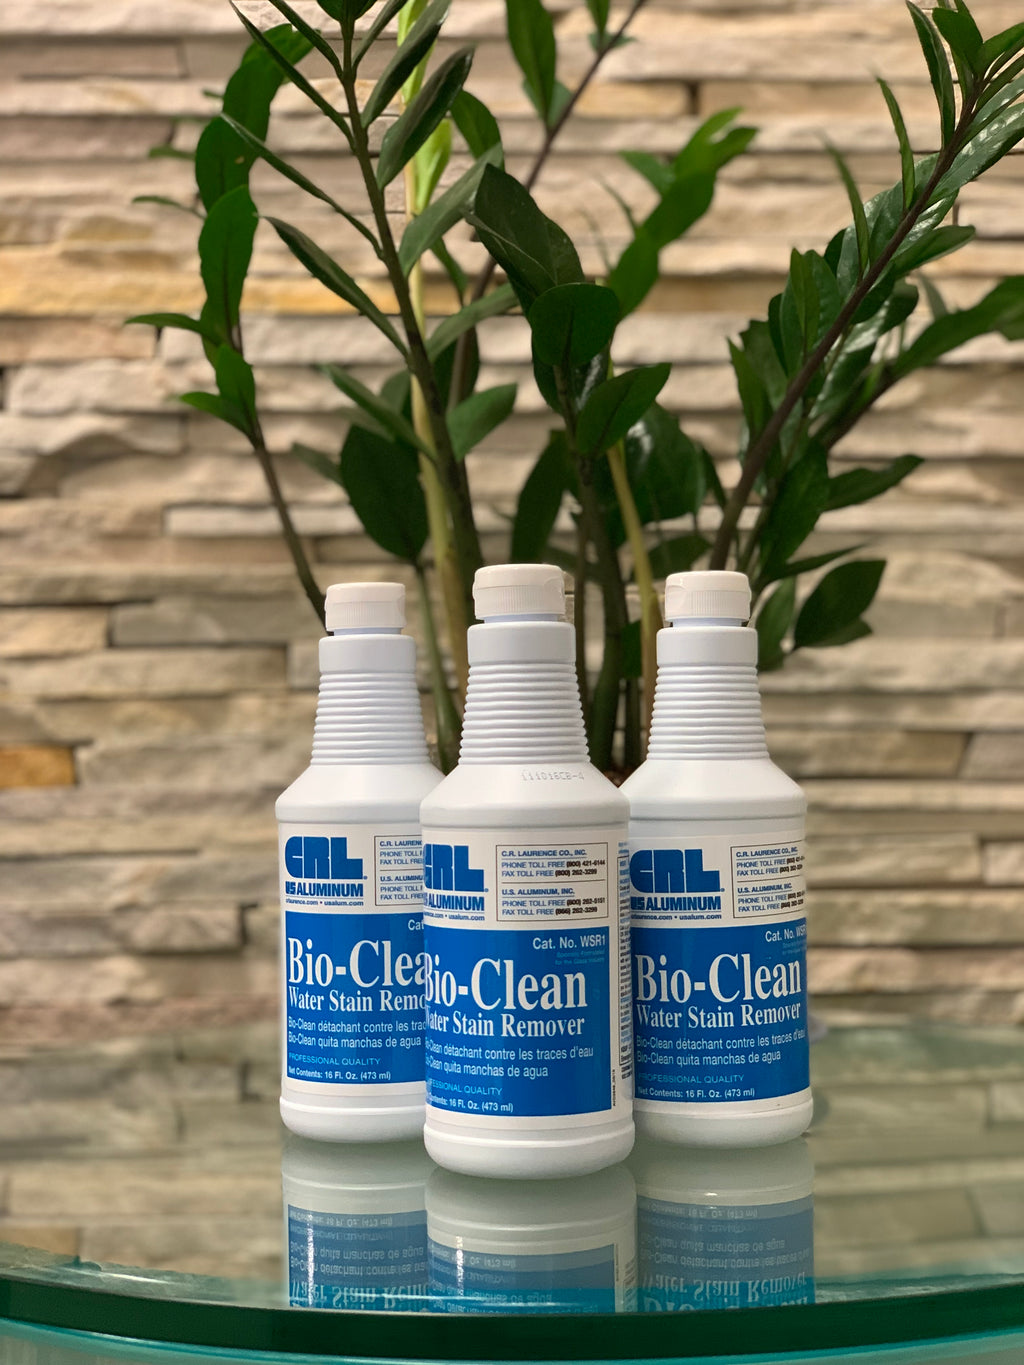 Bio-Clean- Water Stain Remover